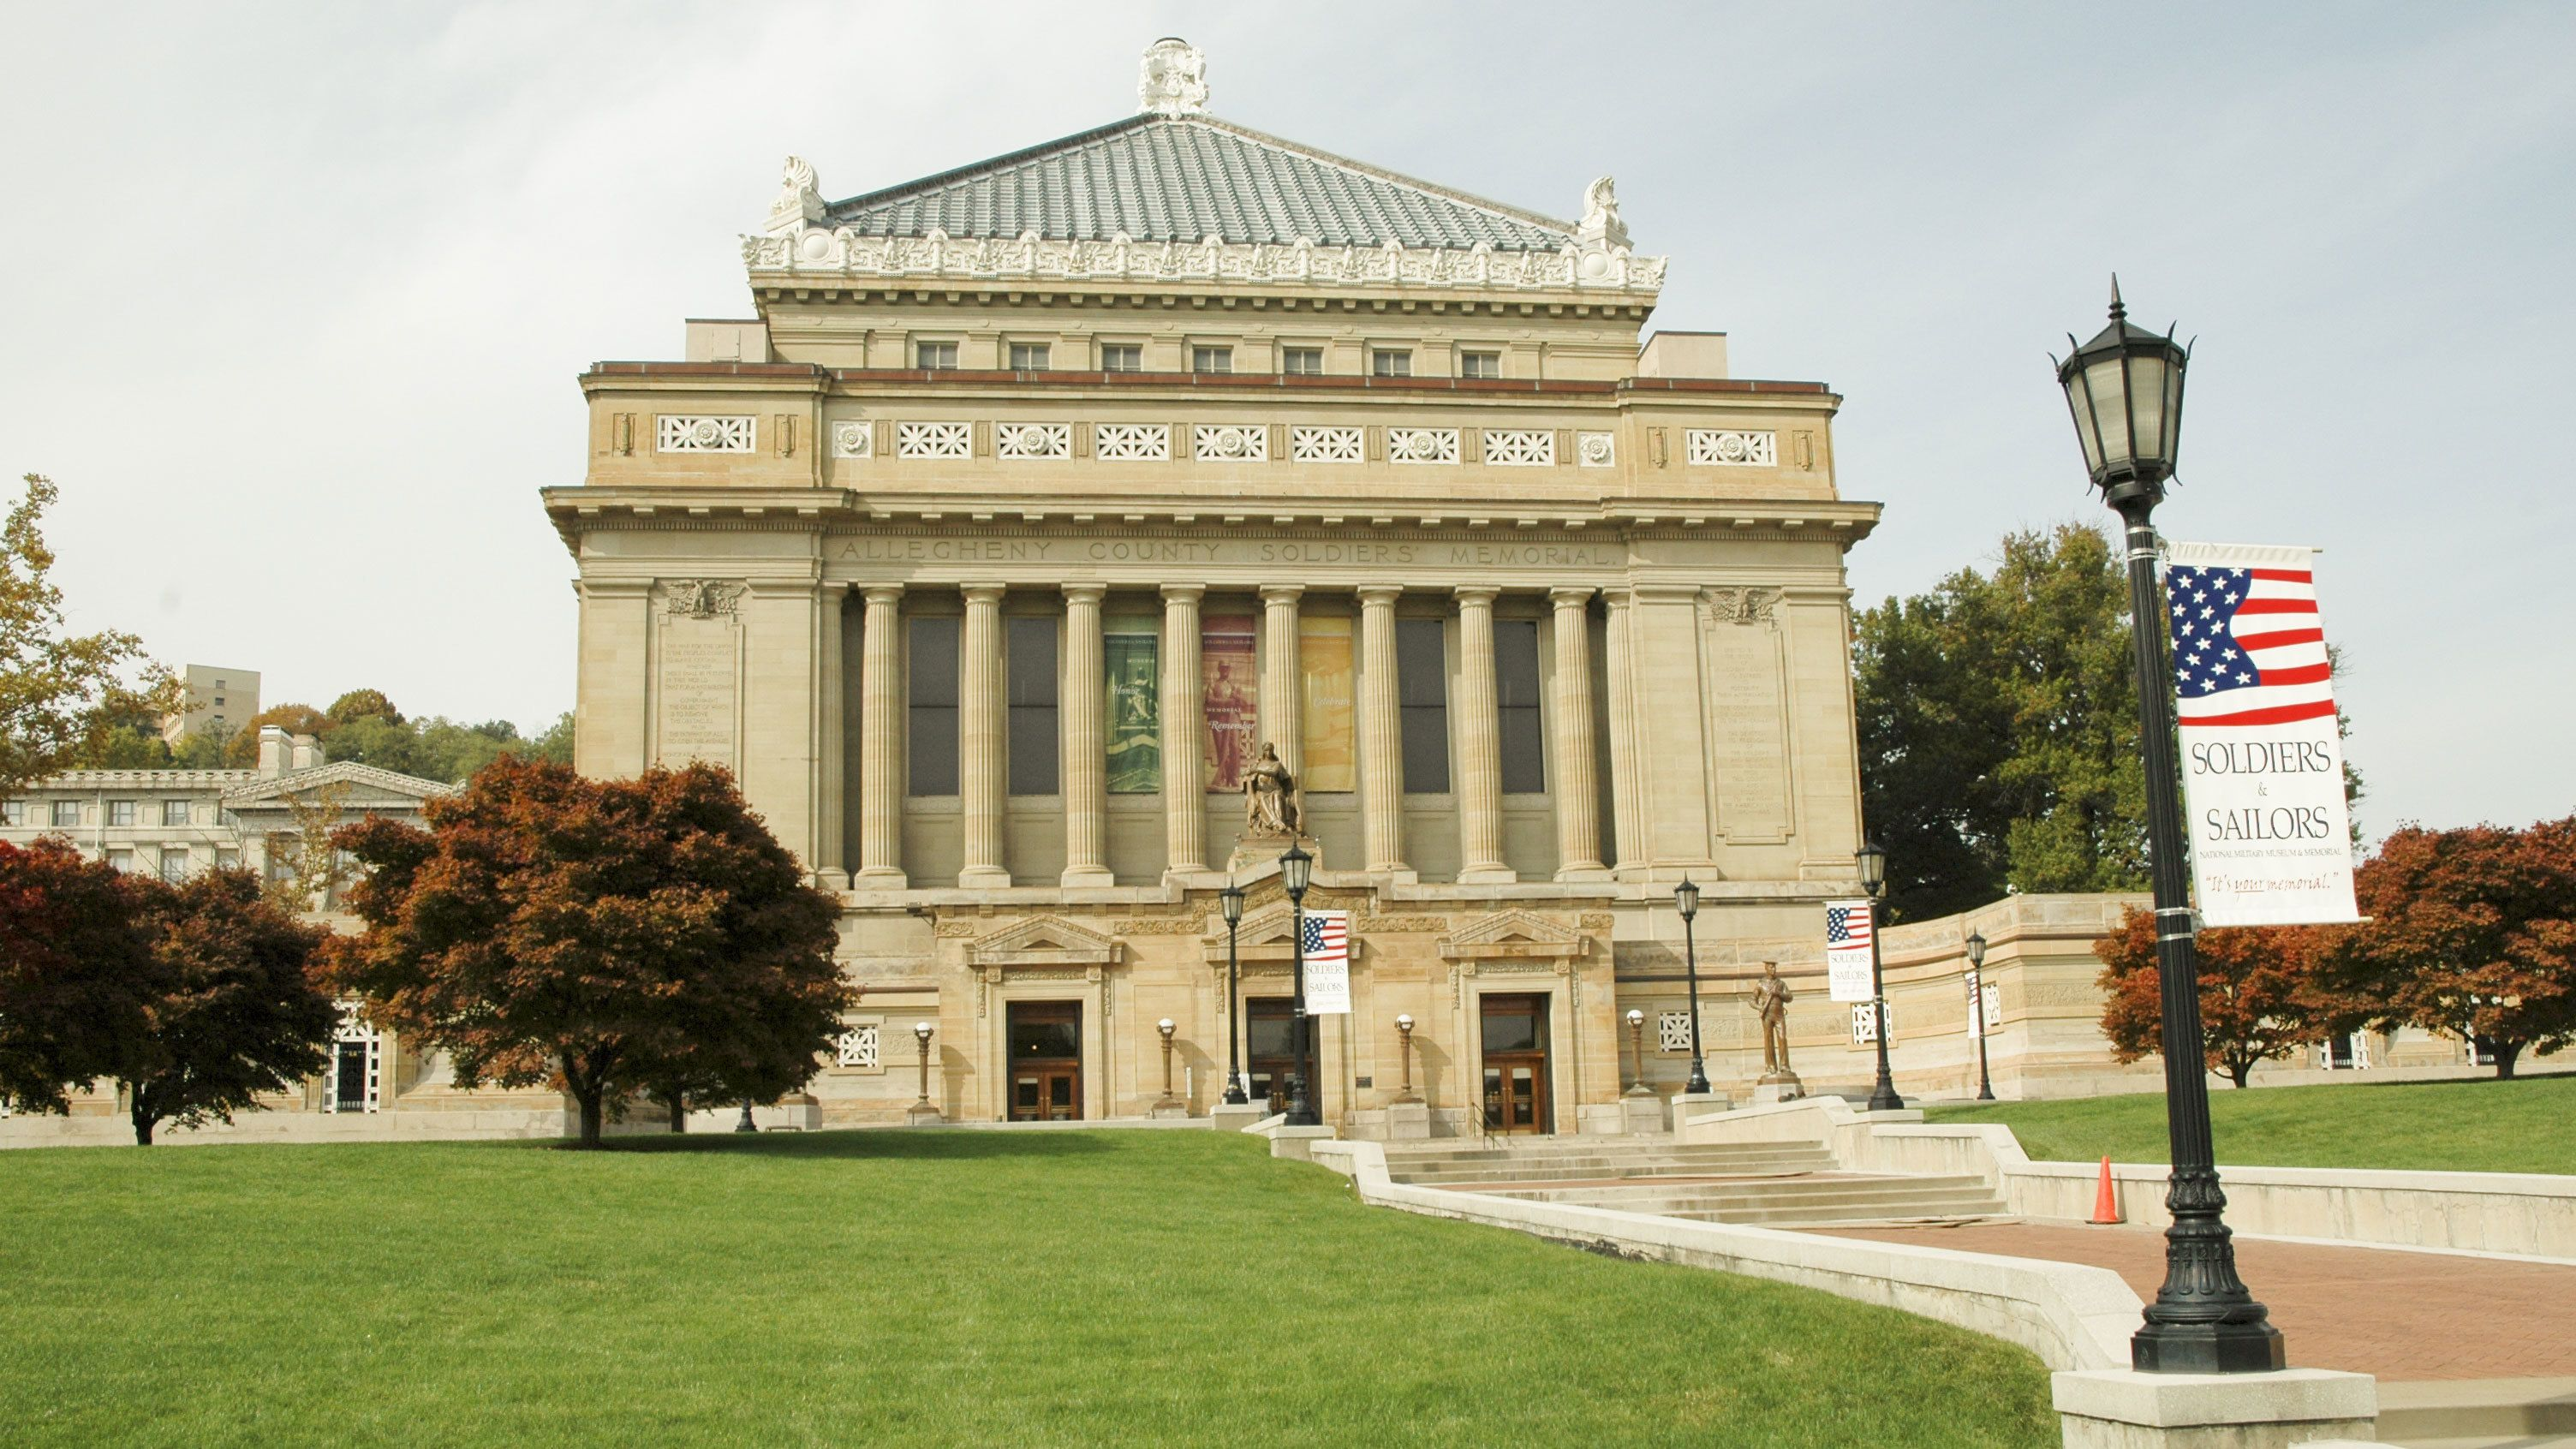 Soldiers and Sailors Memorial in Pittsburgh